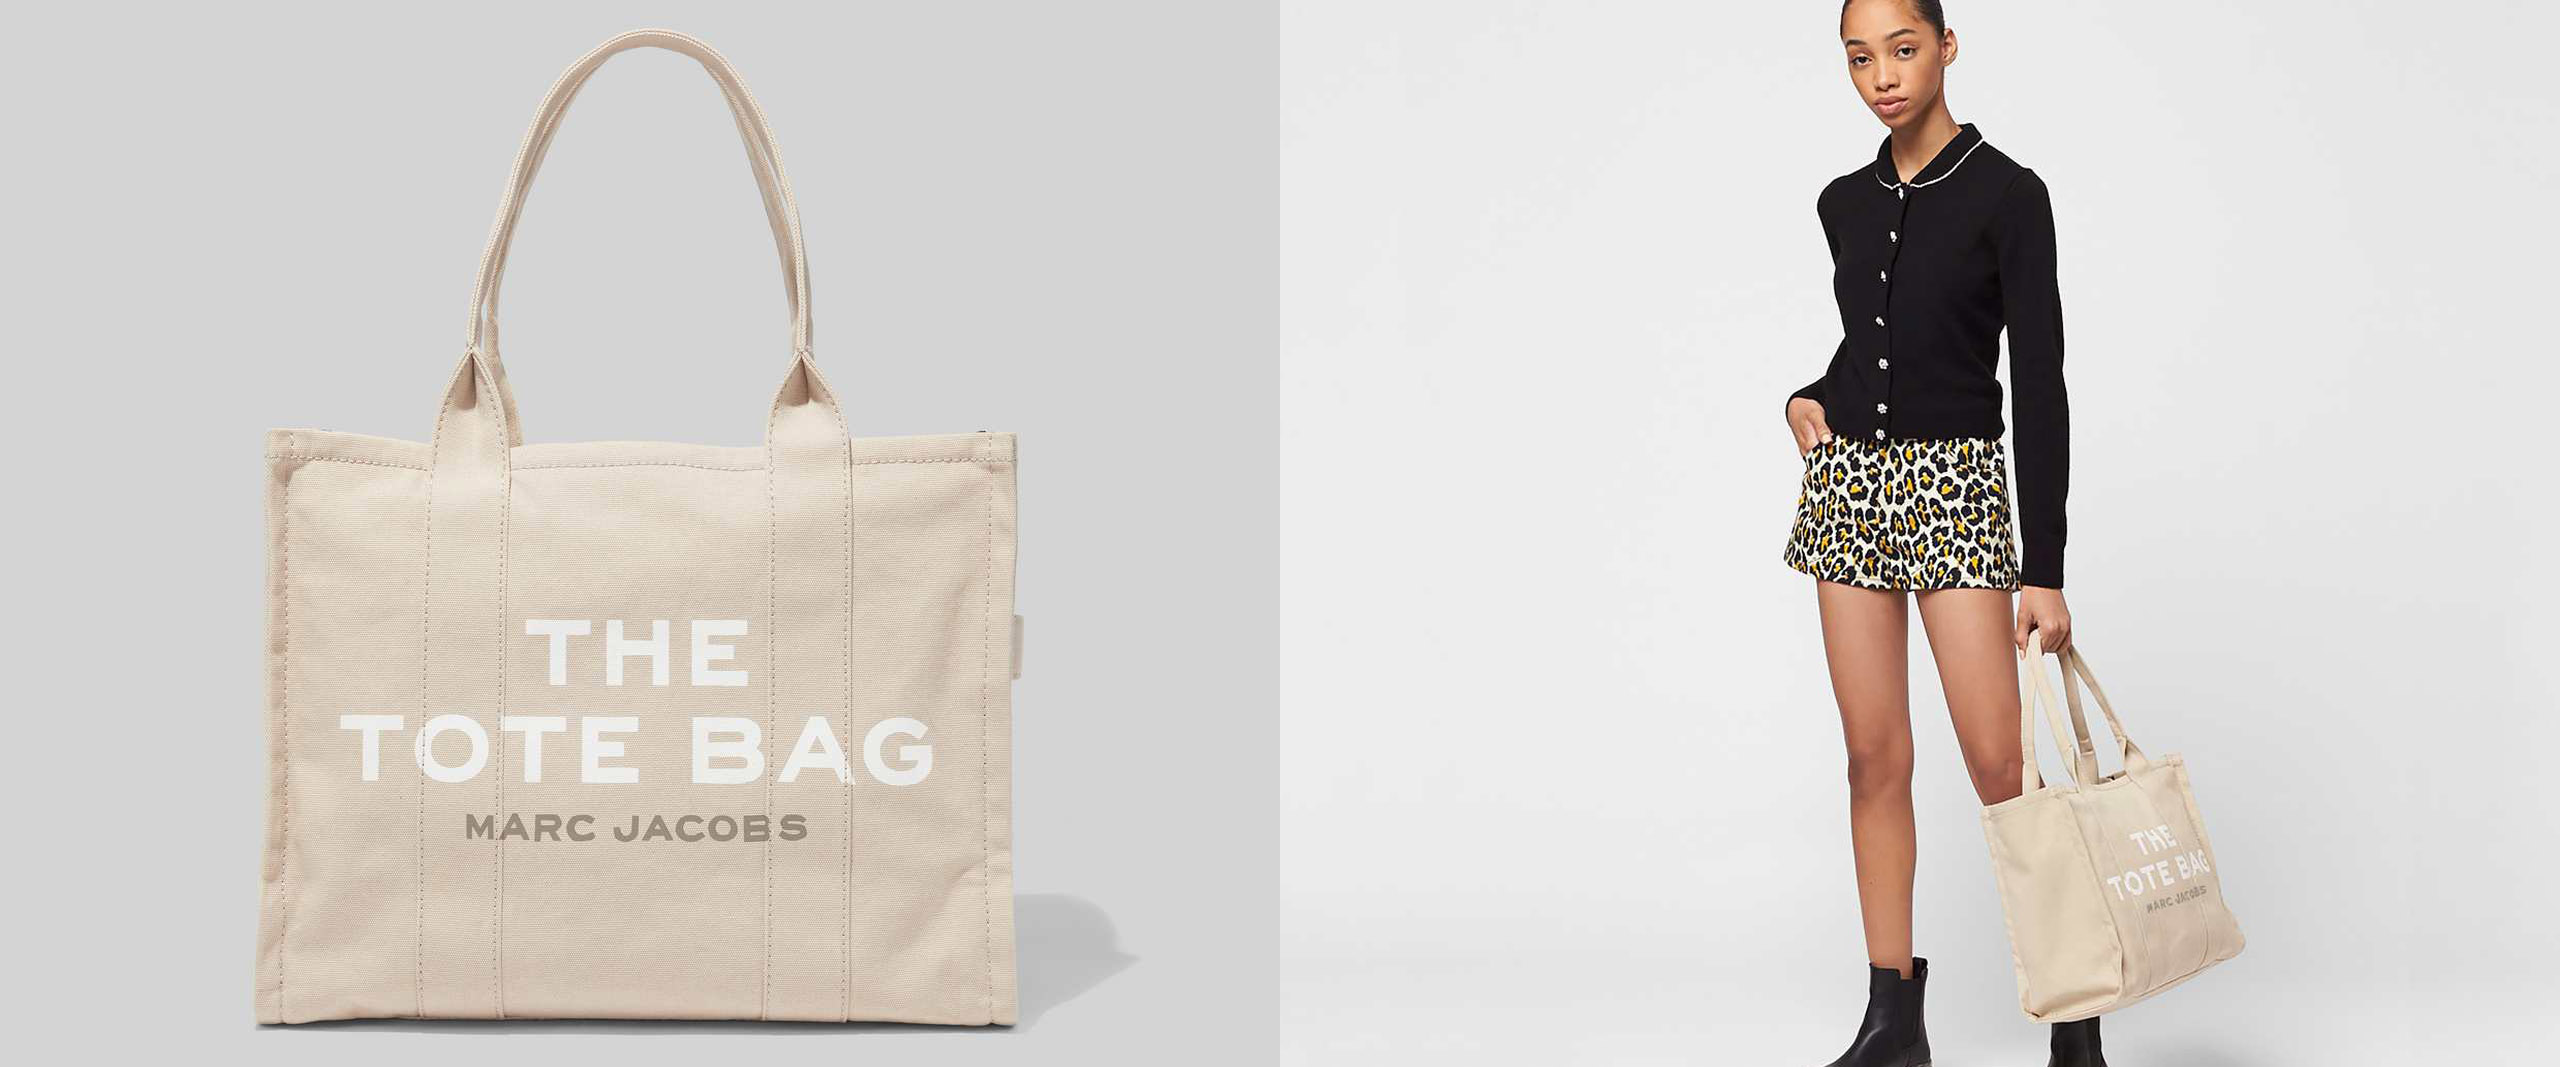 what is Marc Jacobs the tote bag